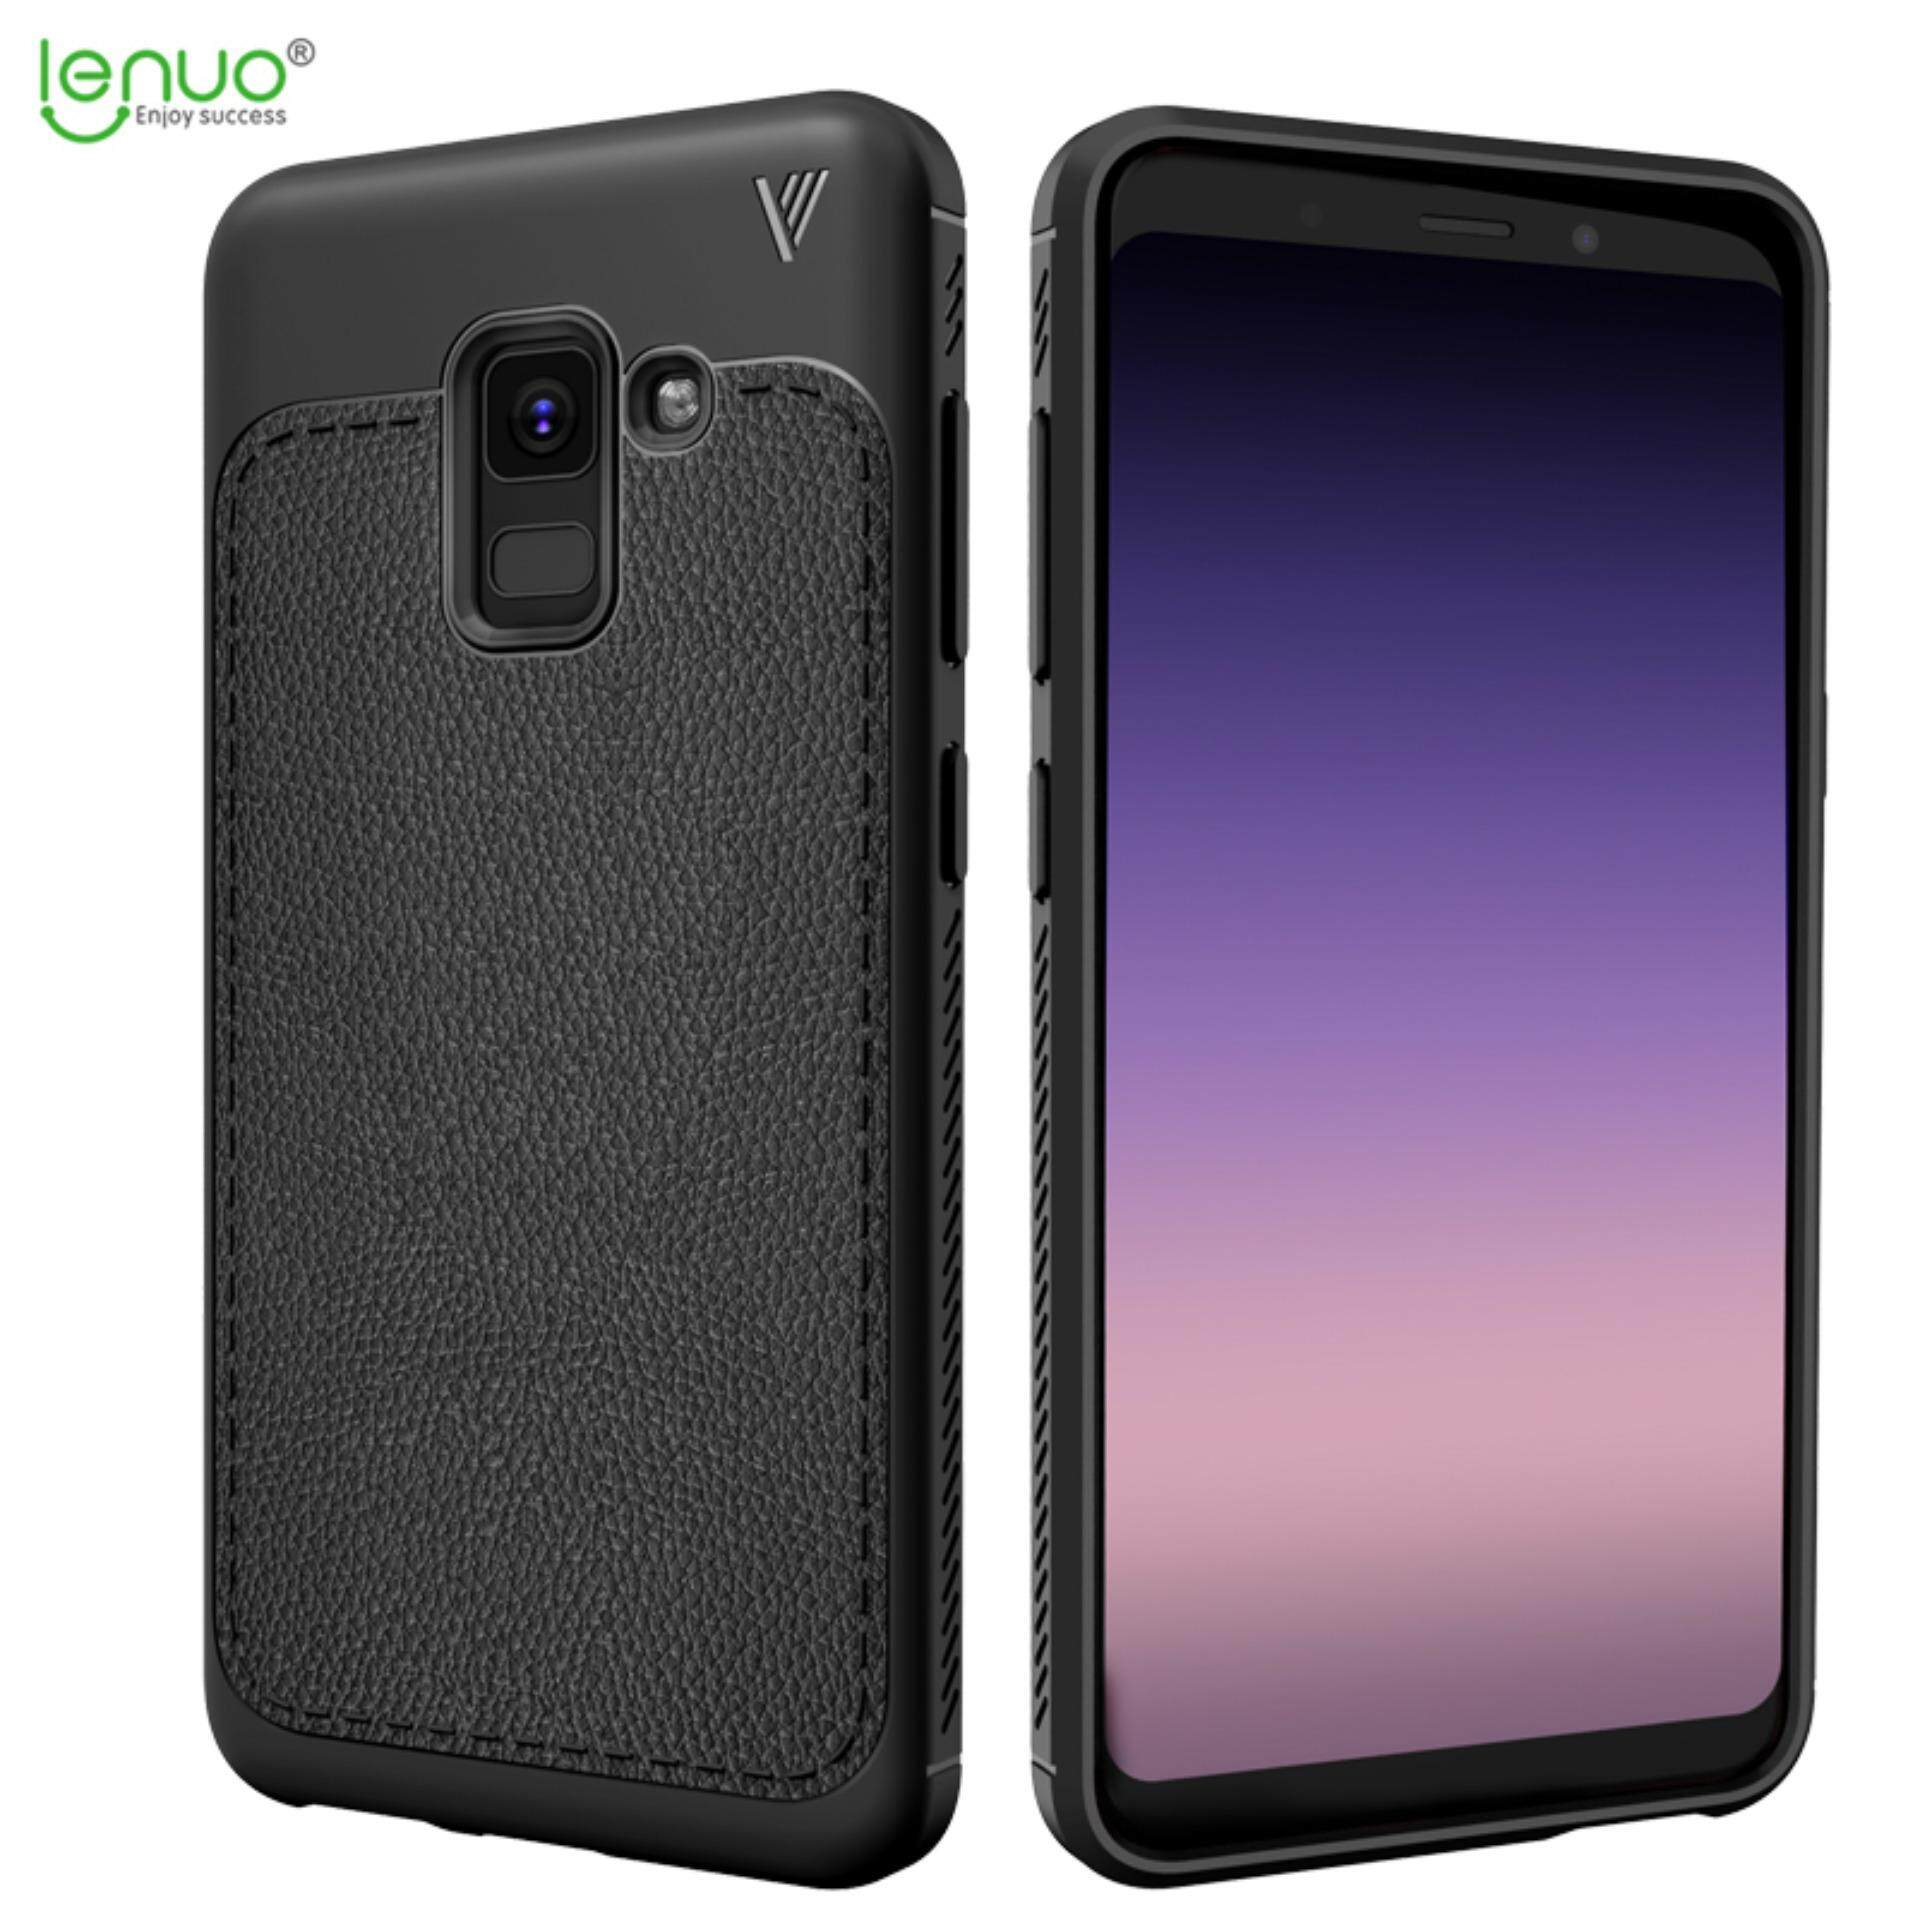 Slim Armor & Spider Thermoplastic Source · Samsung Galaxy A8 2018 Case Lenuo .